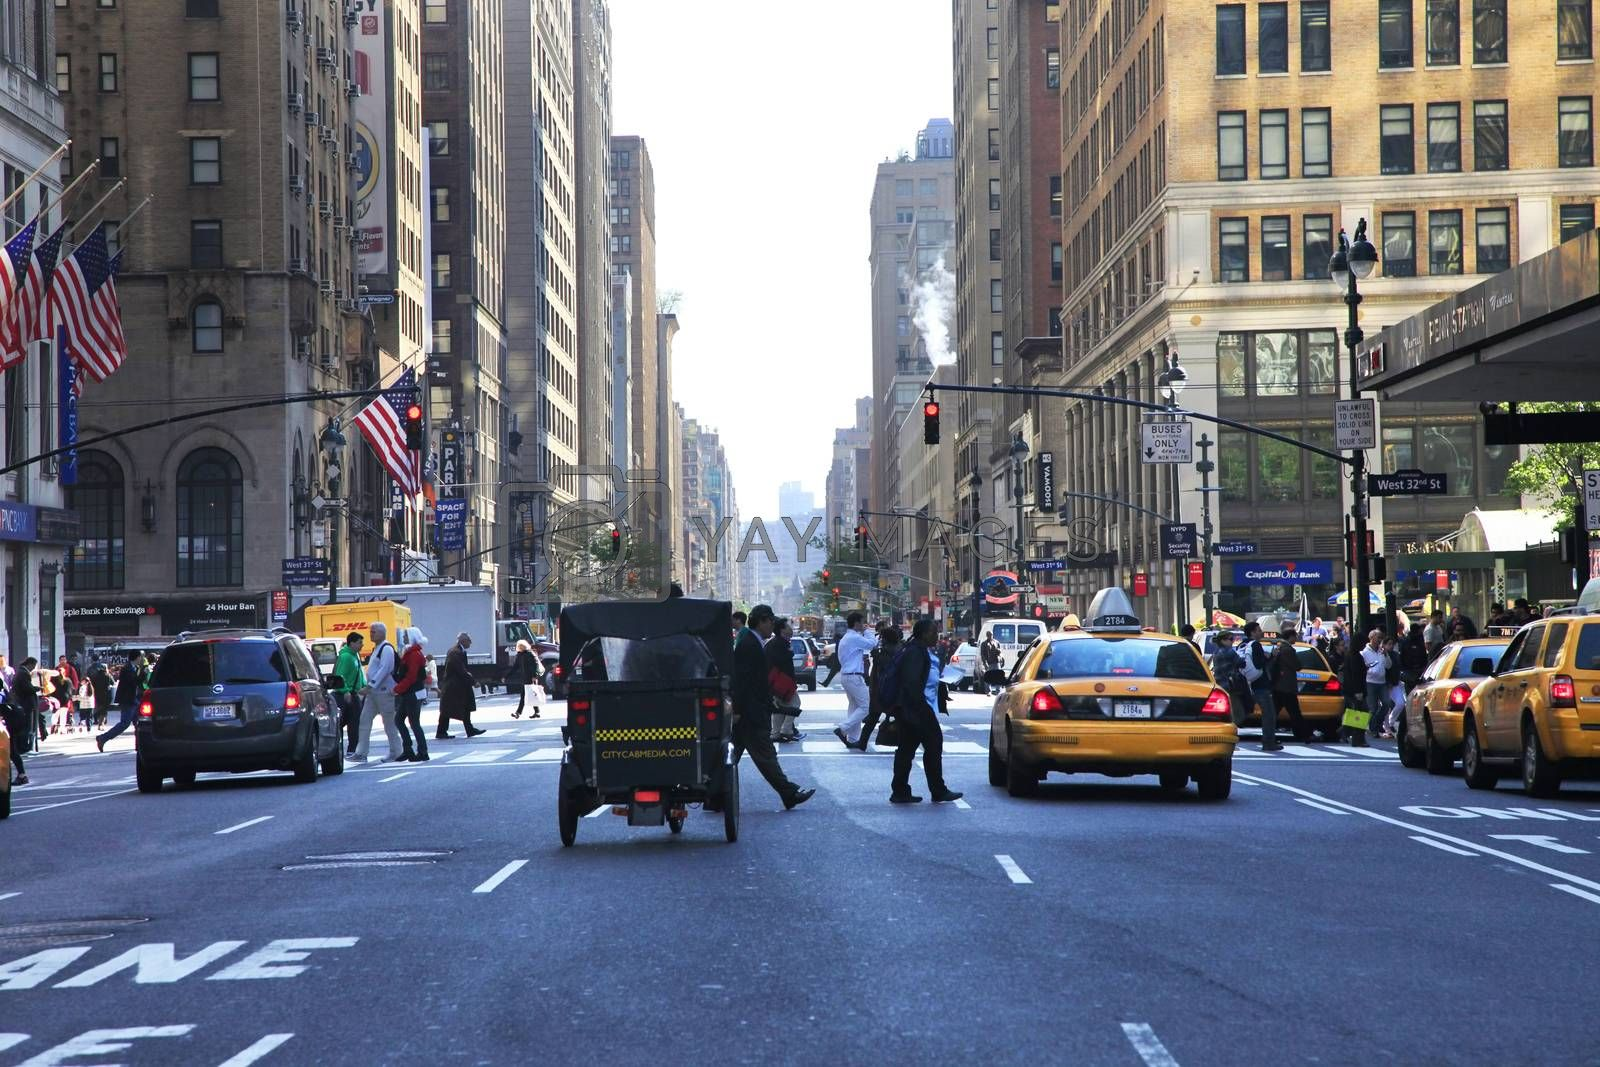 New York, NY, USA - May 15, 2013 : Busy traffic on the street. Intersection along 7th Ave & West 32nd St in midtown Manhattan in New York